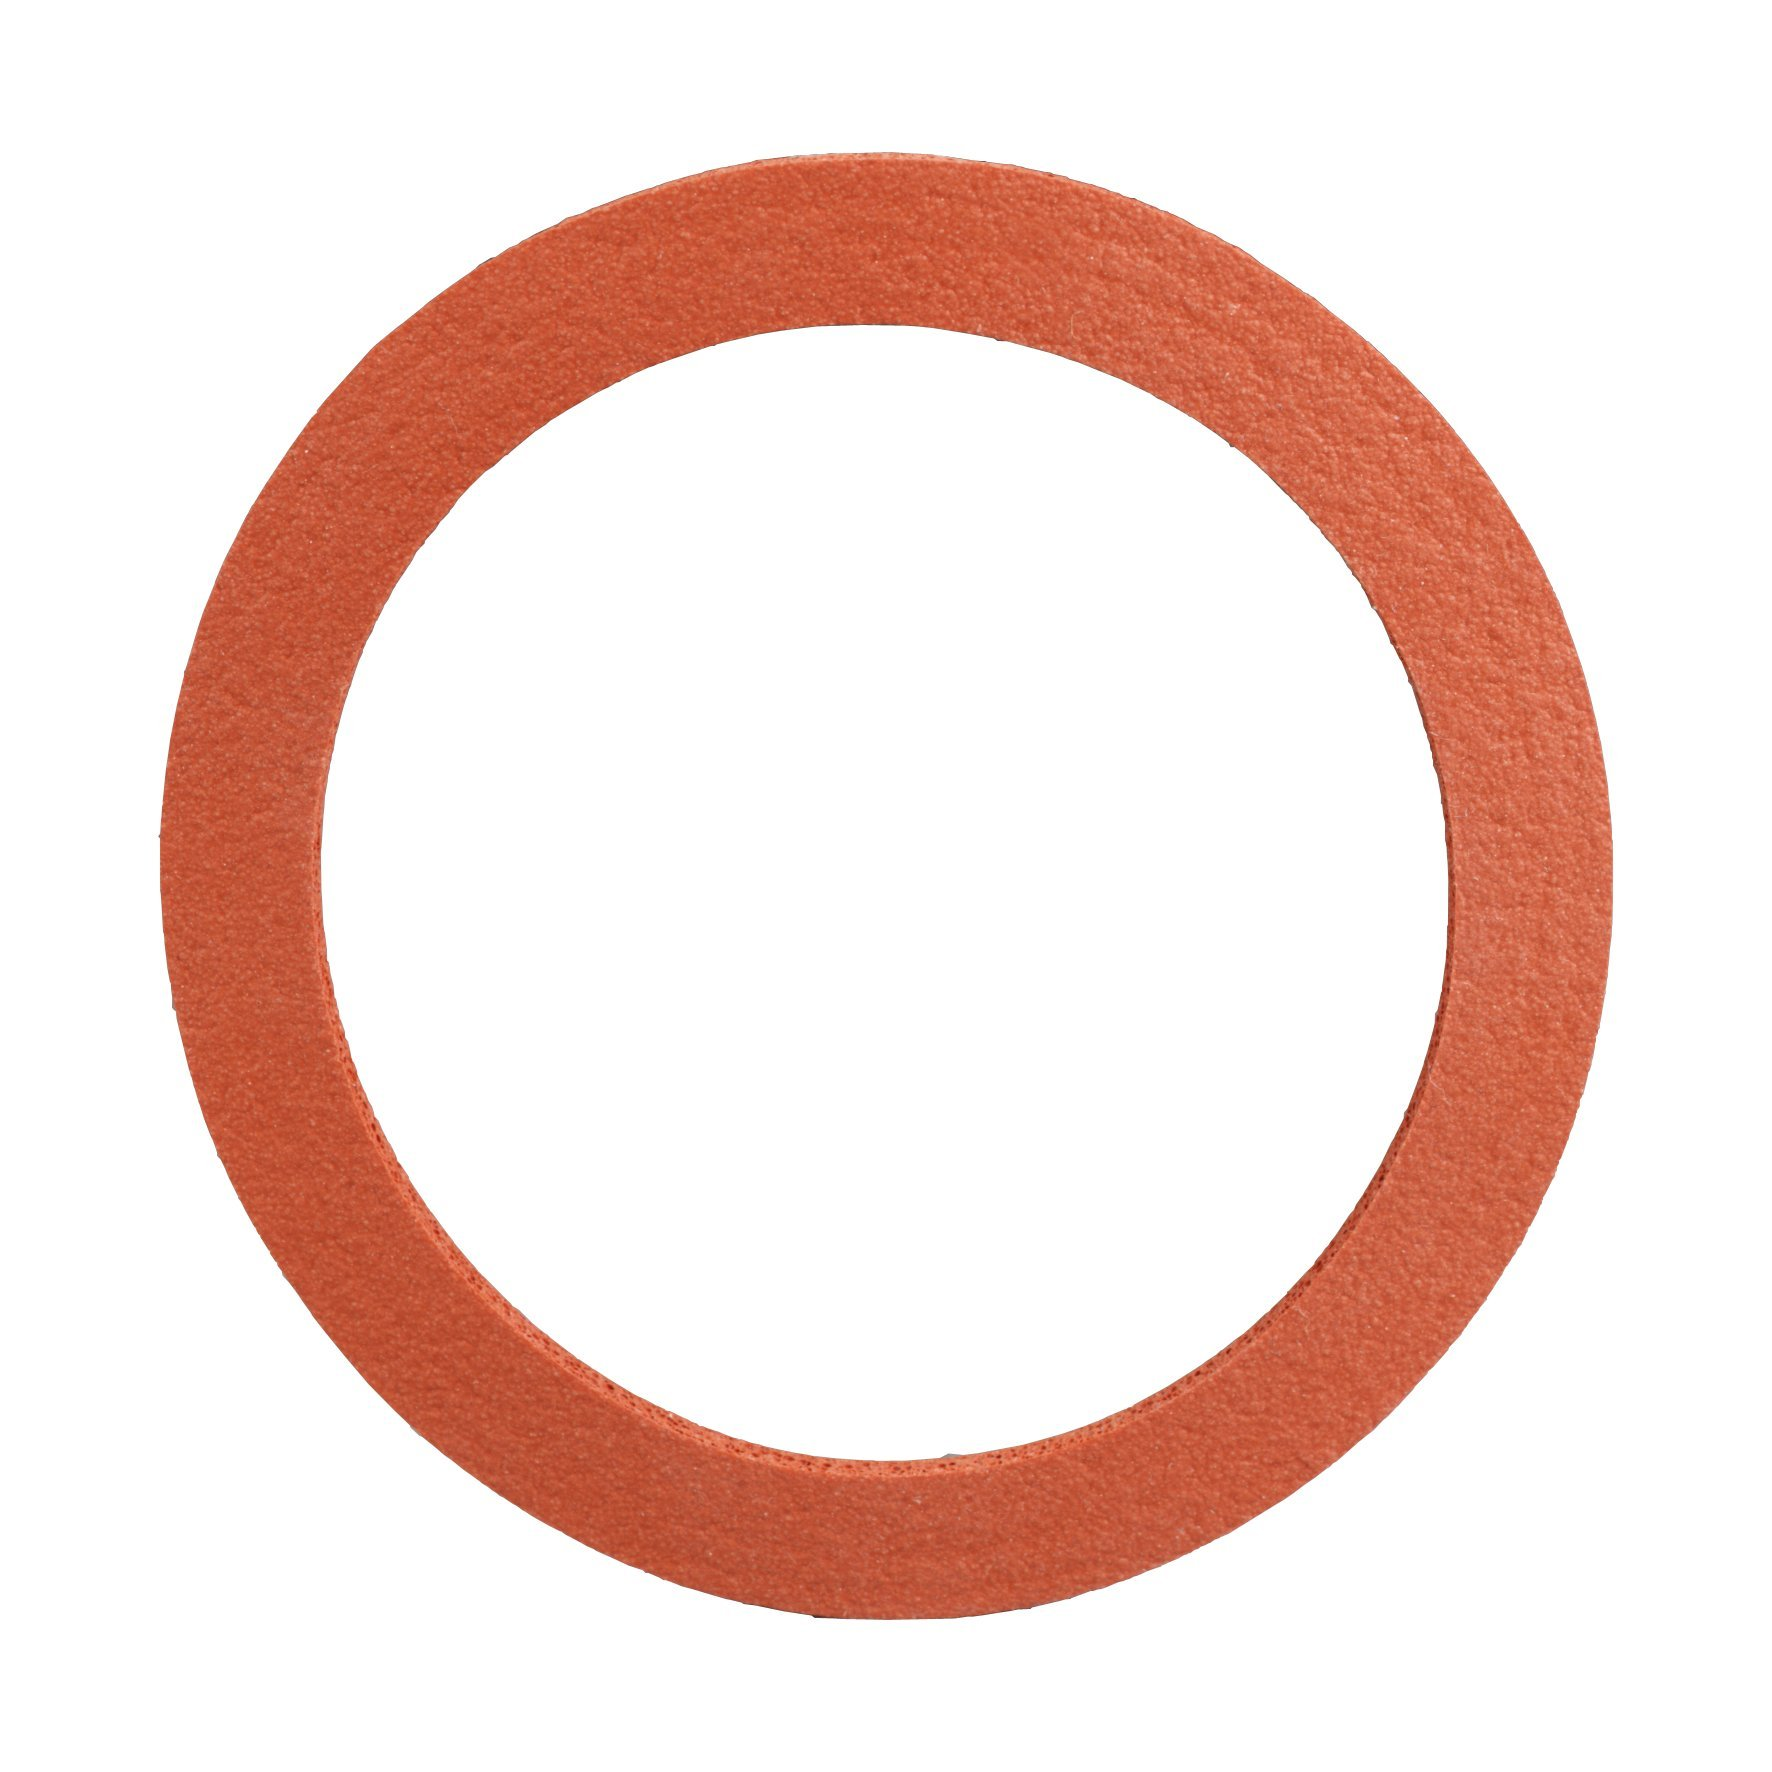 3M Center Adapter Gasket 6896, Respiratory Protection Replacement Part  (Pack of 5)